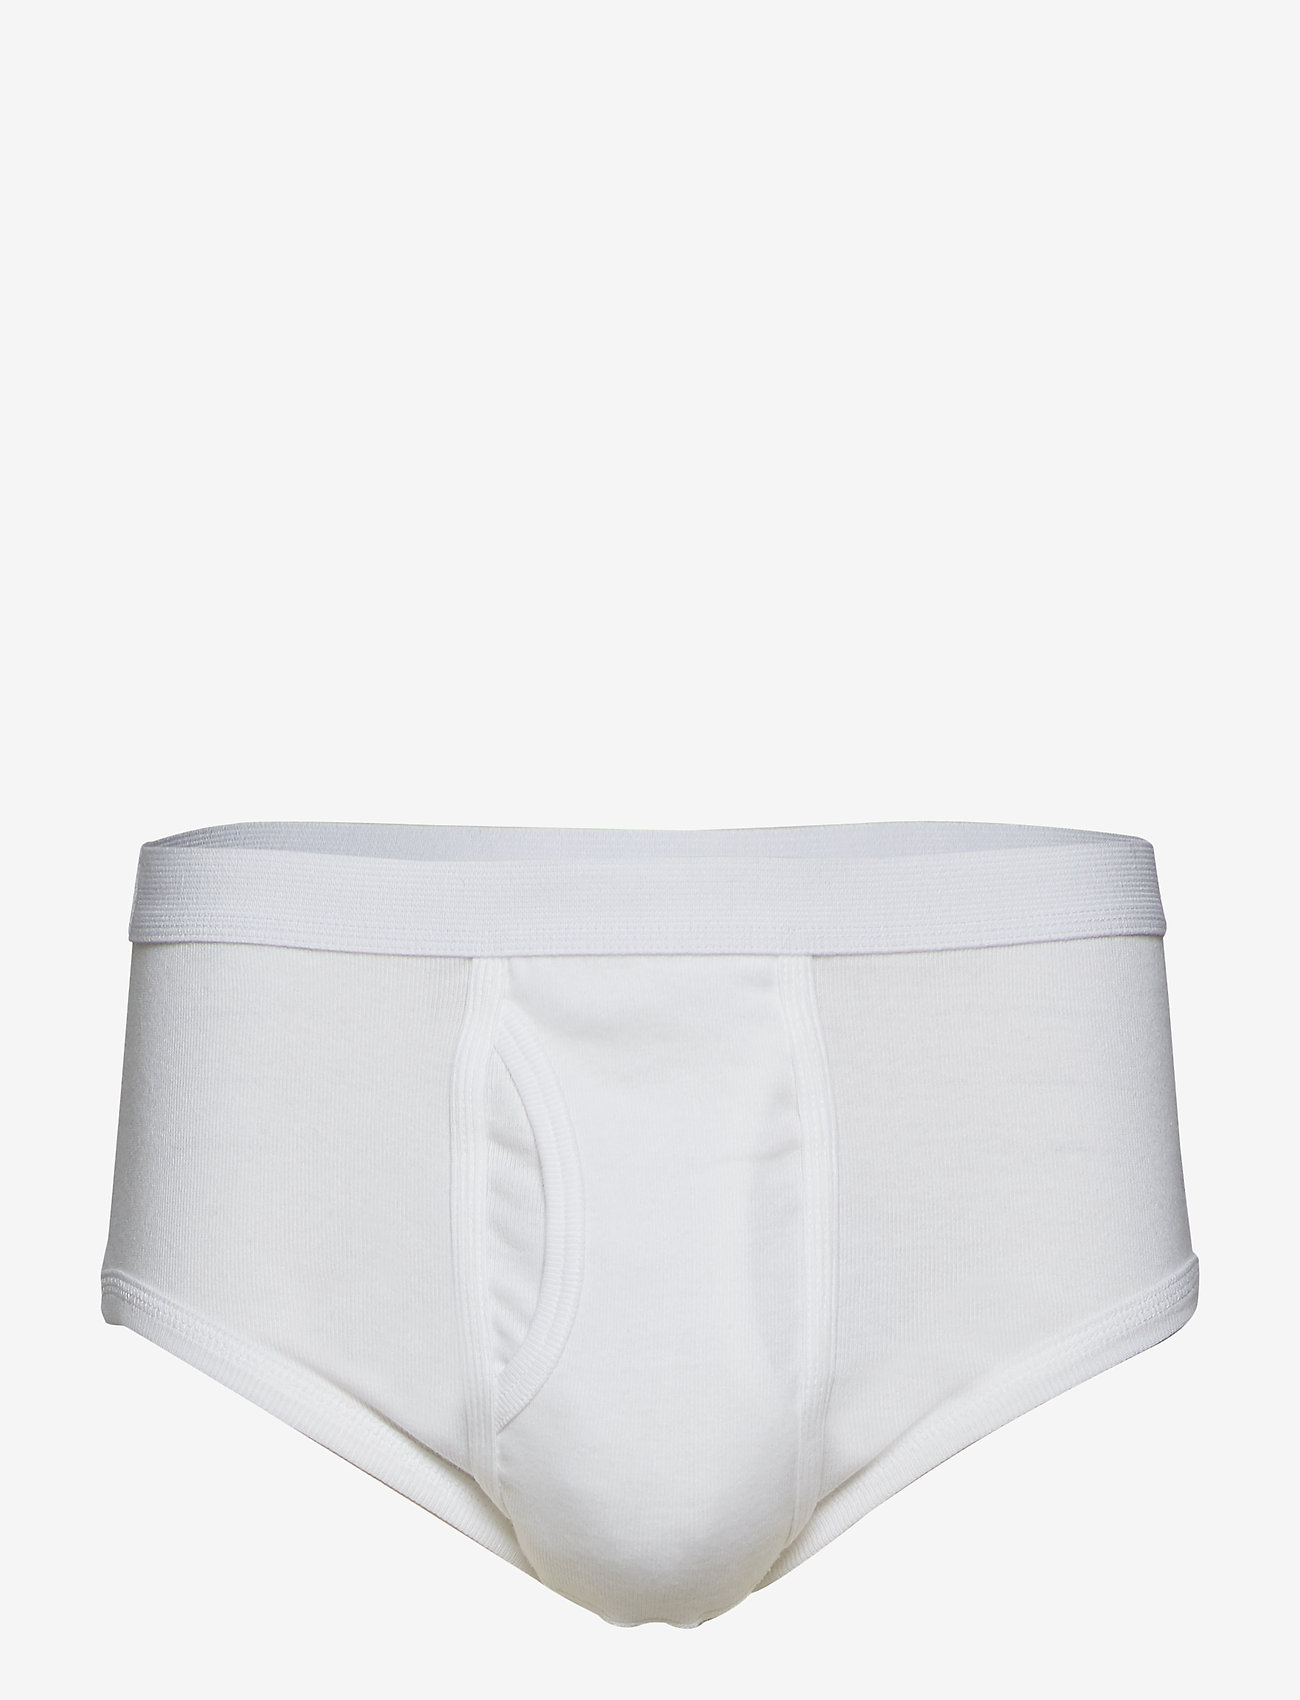 JBS - Original briefs - briefs - white - 0